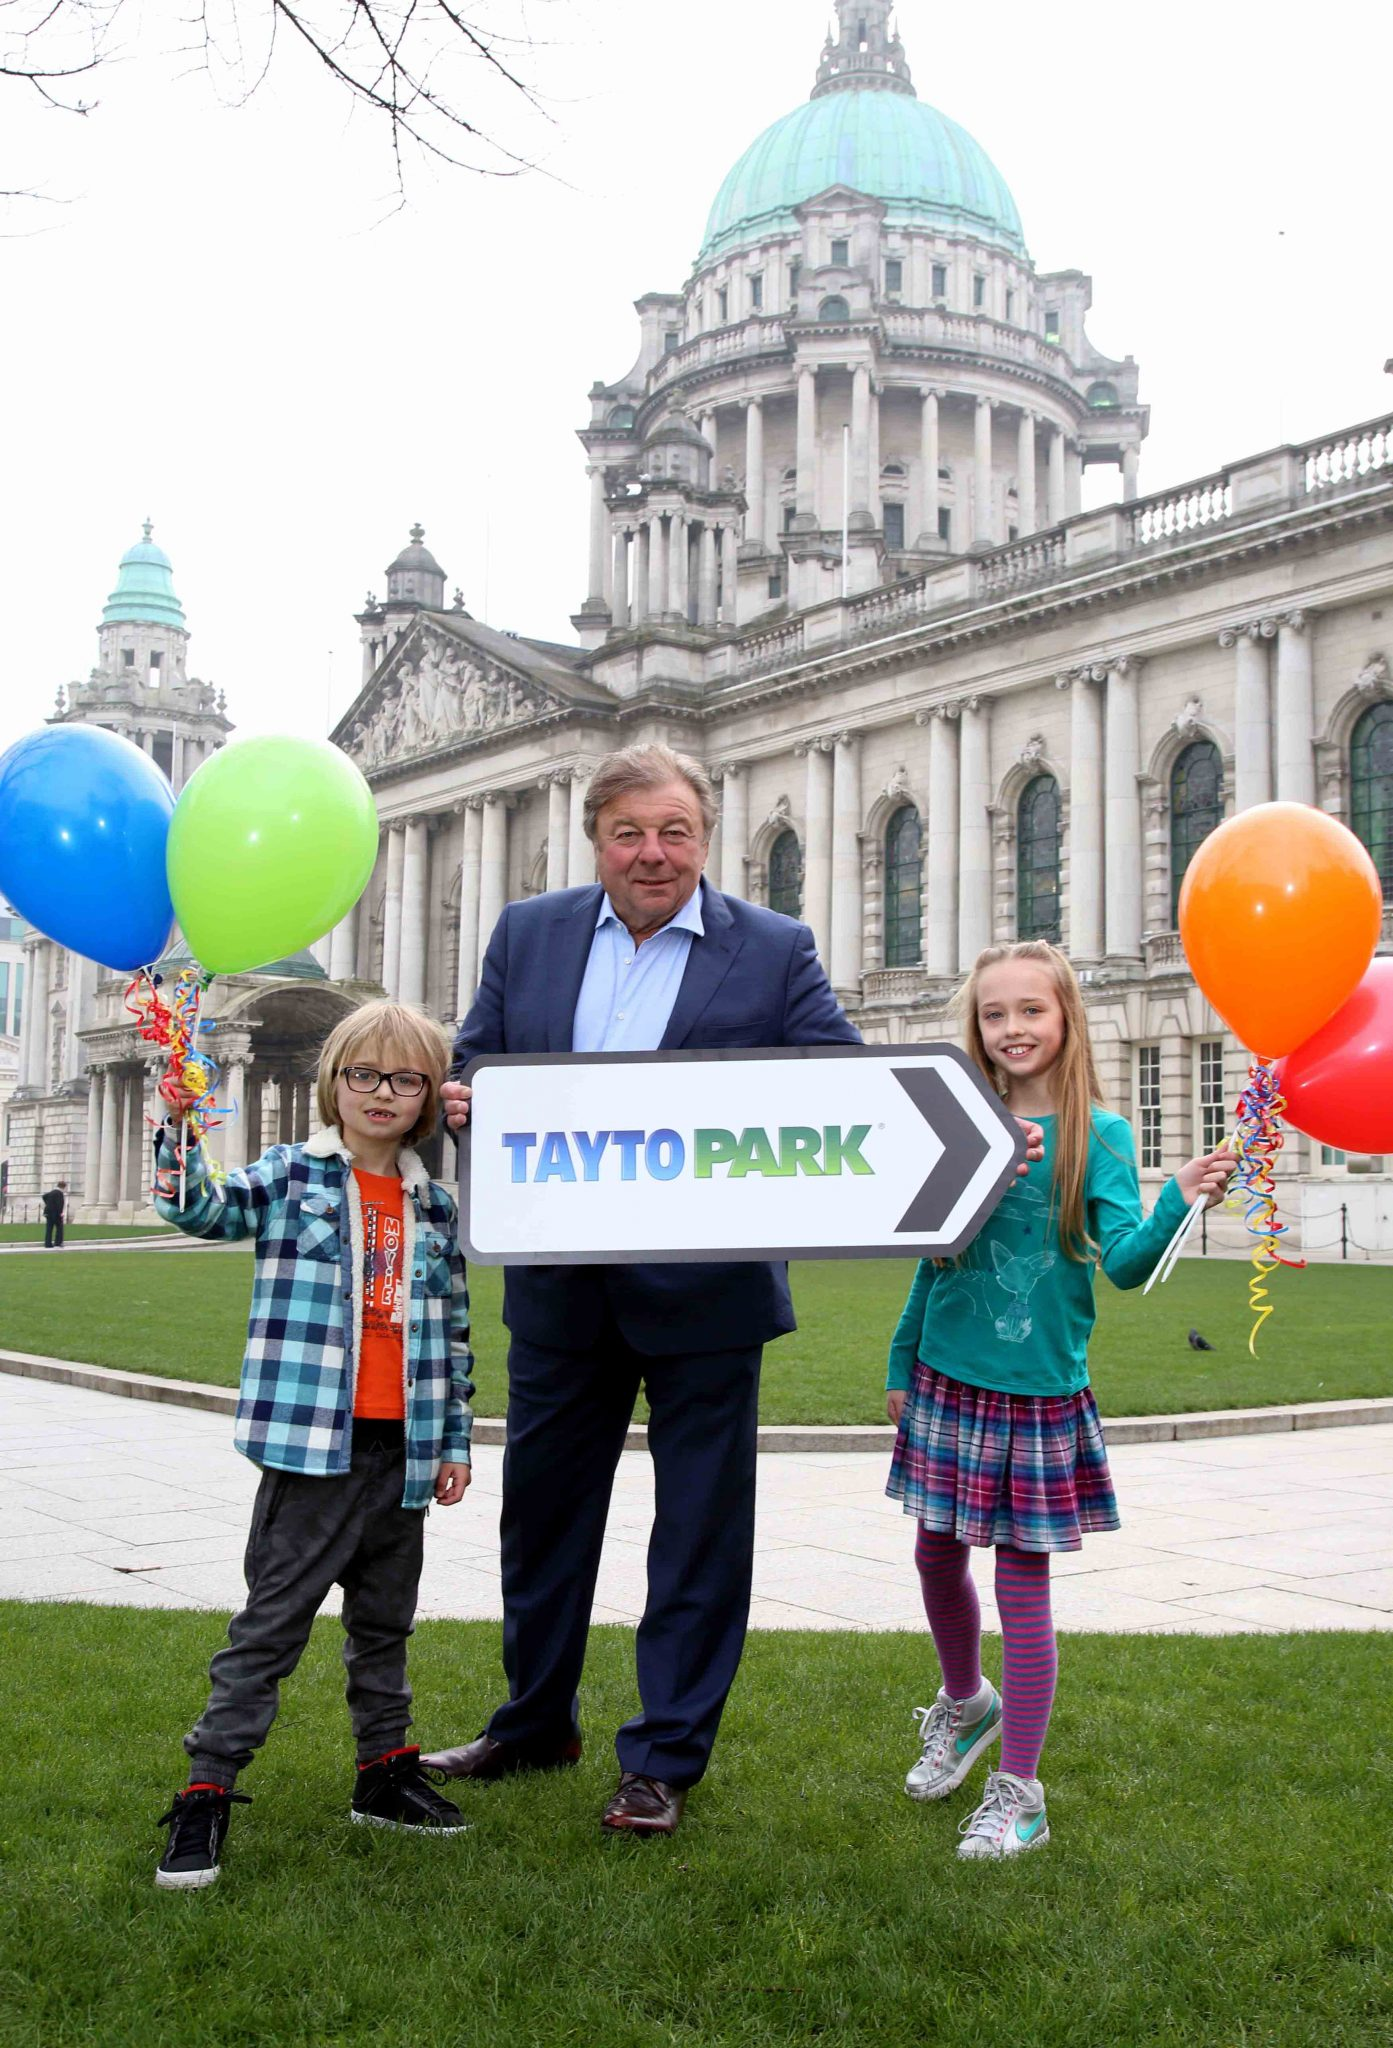 TAYTO PARK ATTENDANCE FIGURES GO NORTH… Ireland's only theme park and zoo celebrates new season with rise in visitors from NI